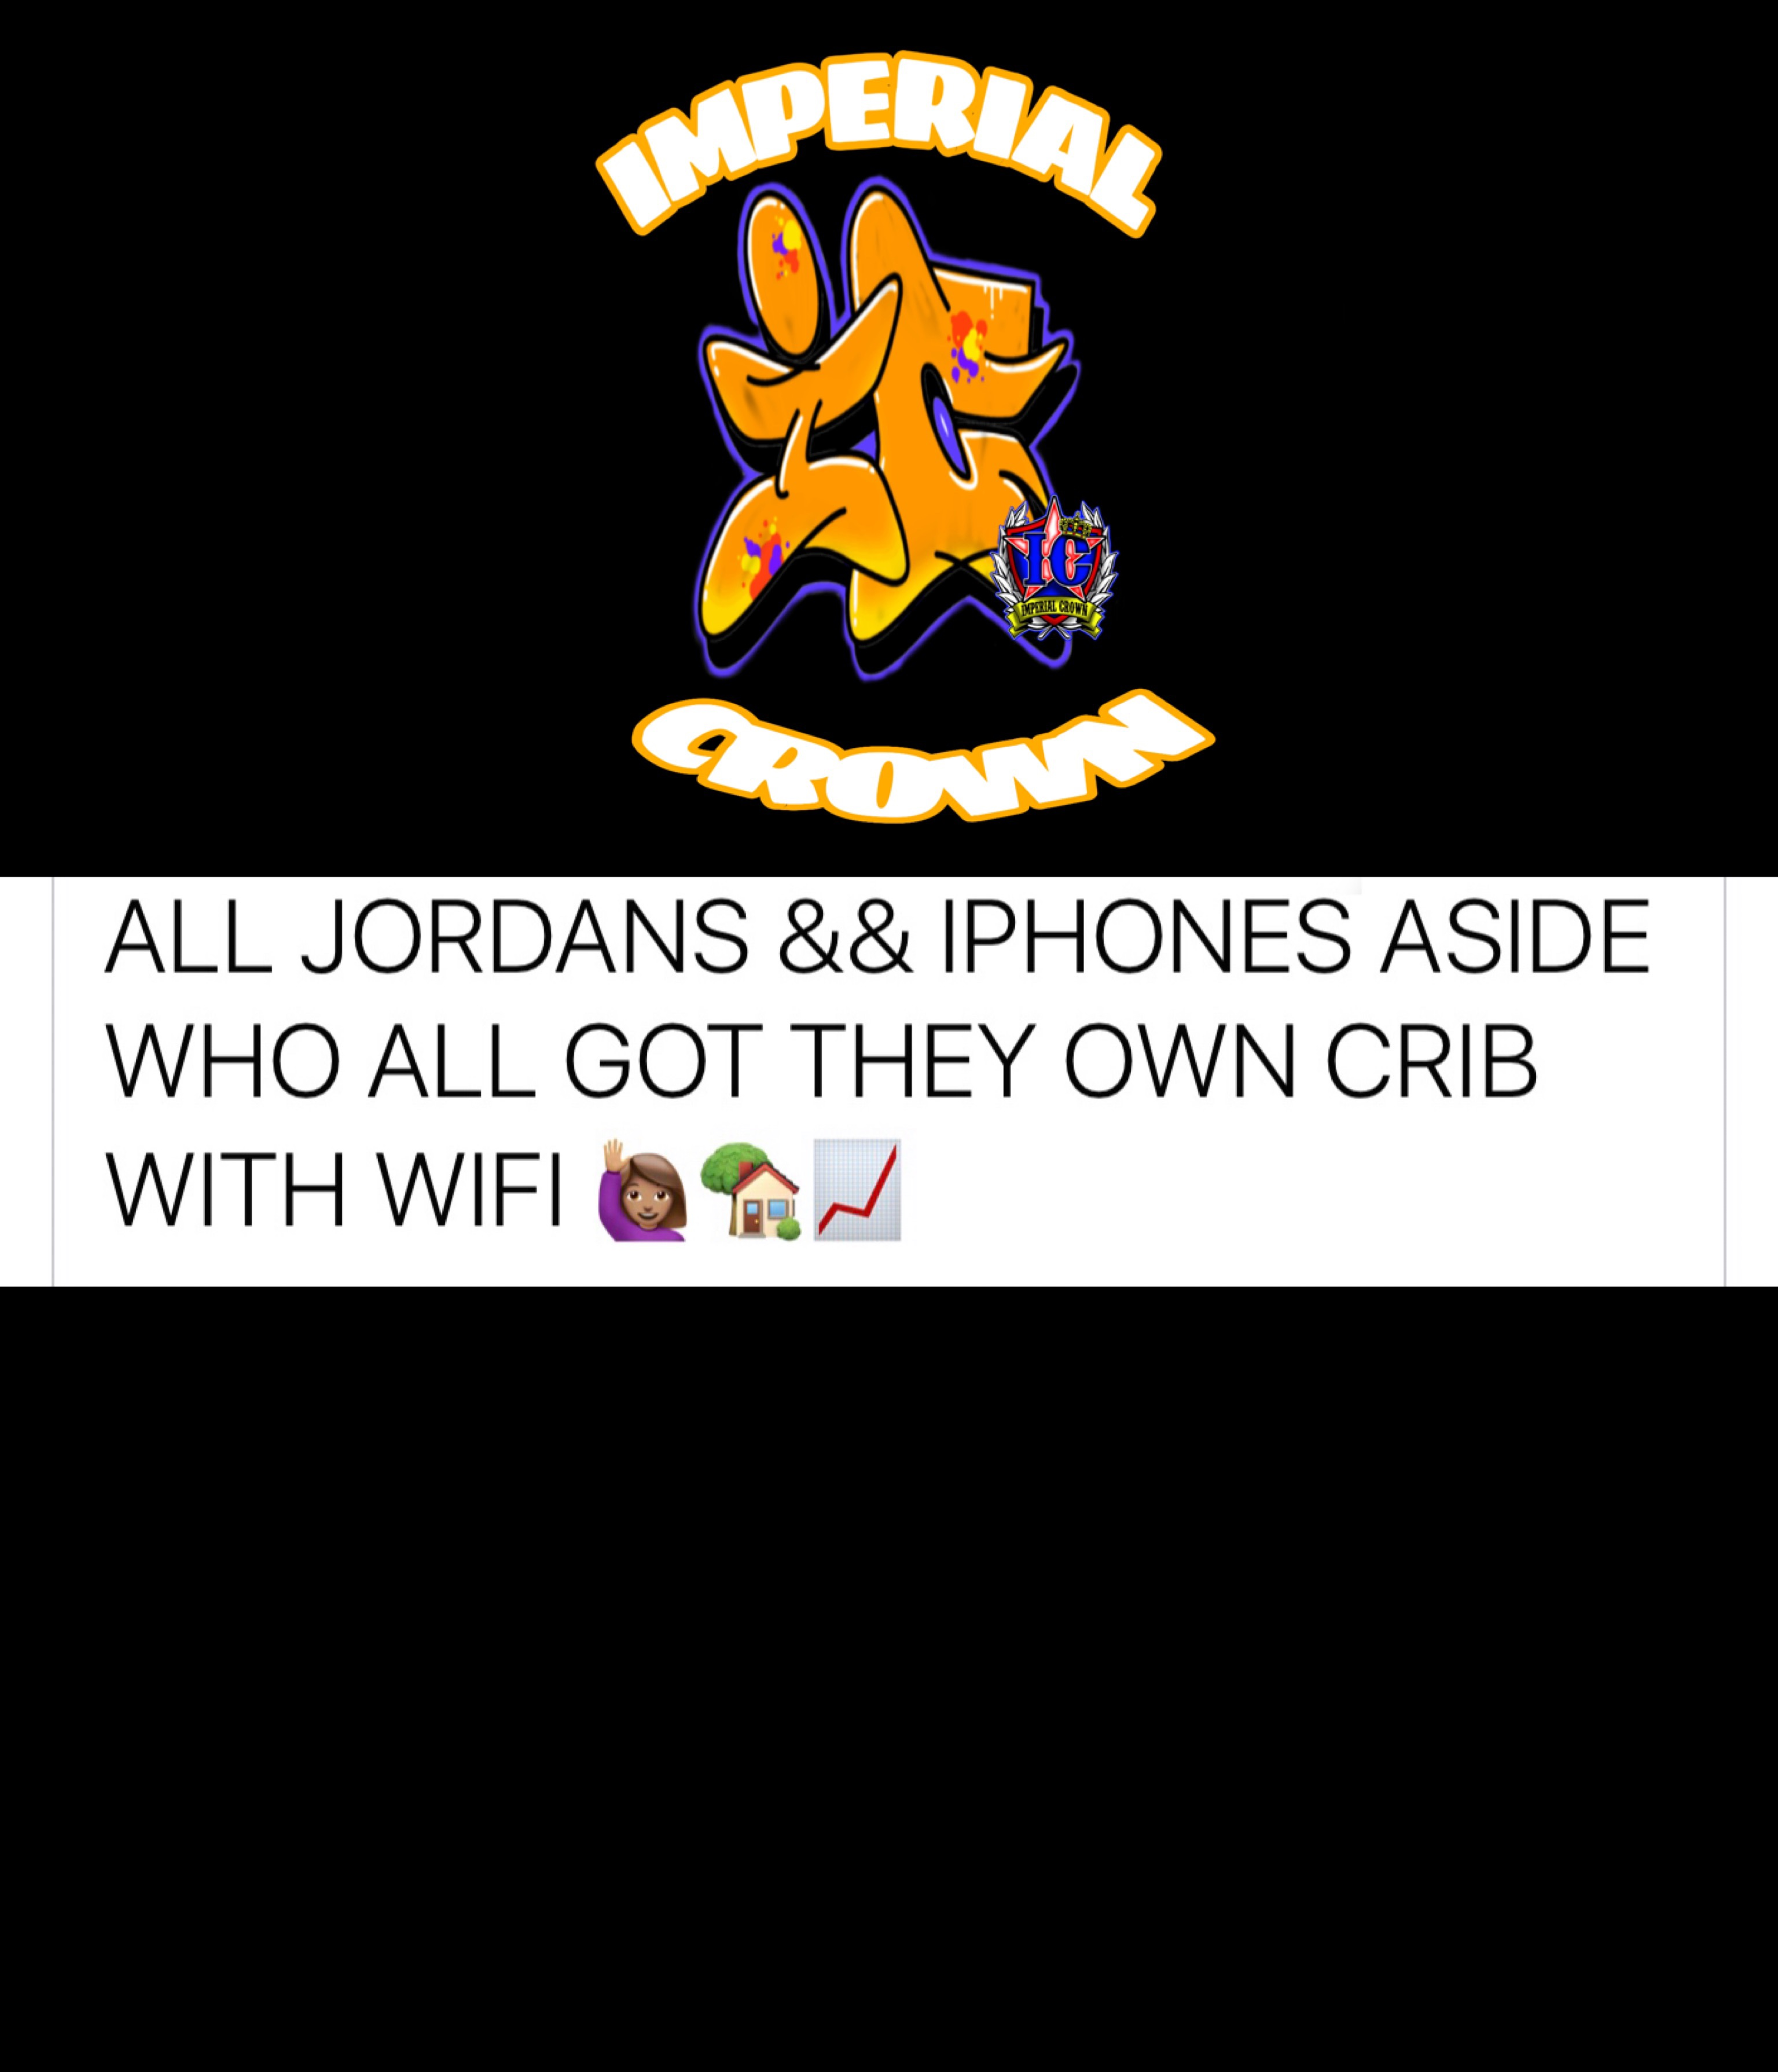 All Jordans and iPhones aside who all got they own crib with Wi-Fi